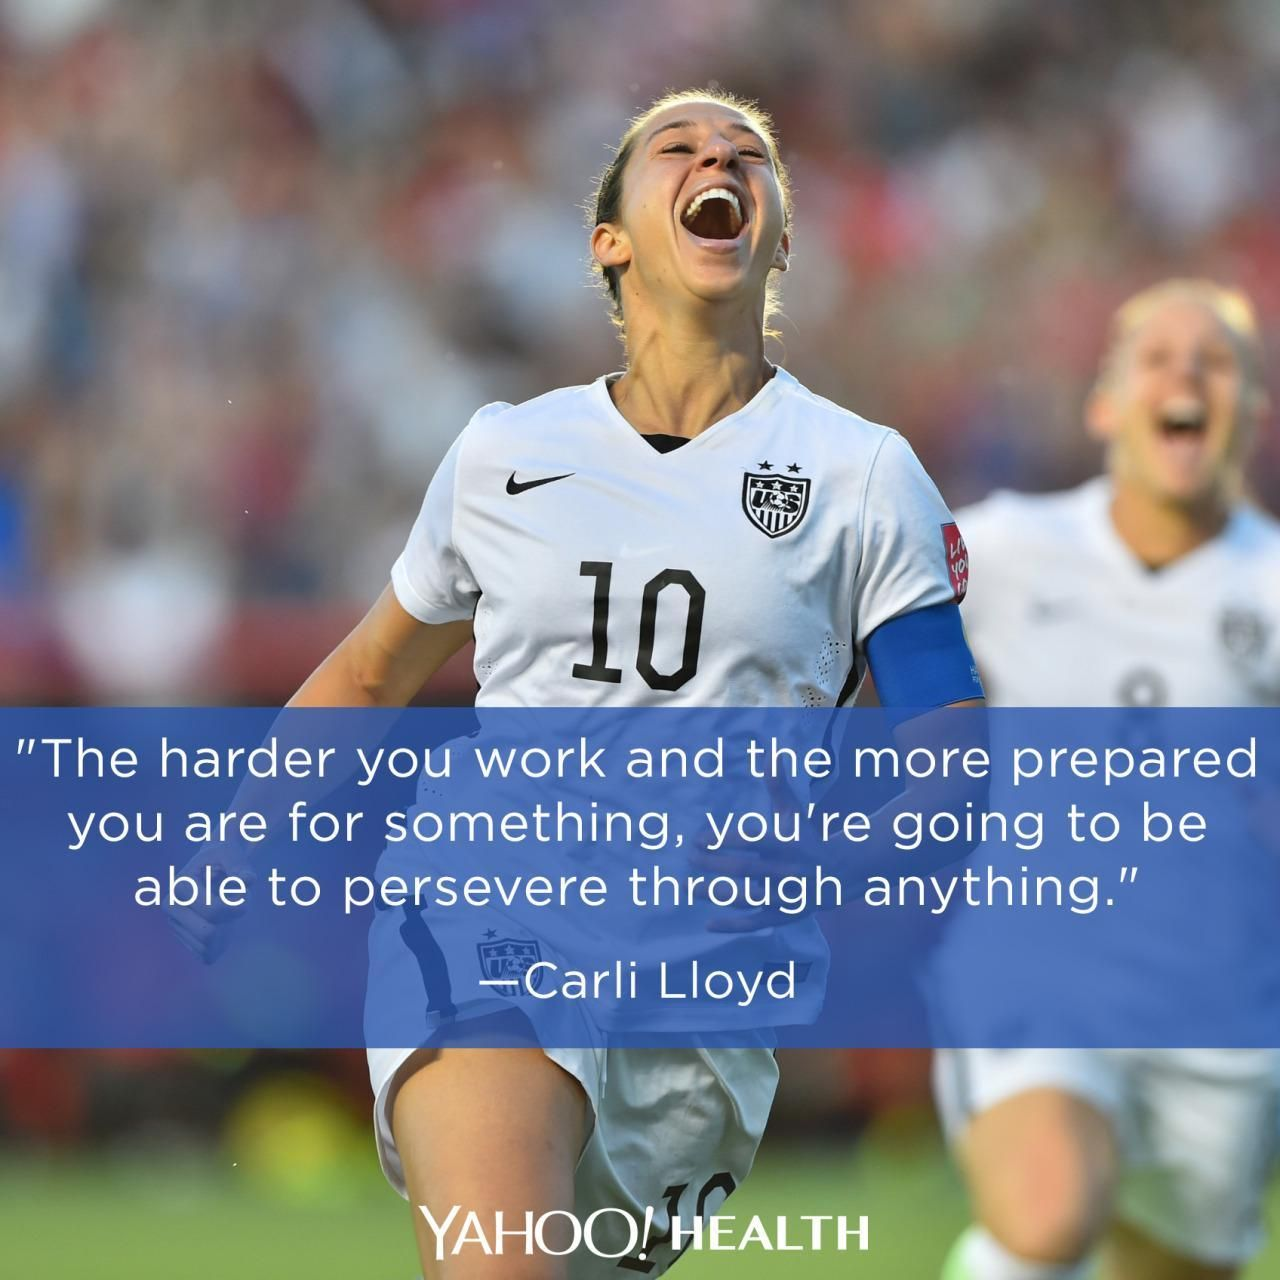 Carli Lloyd Quotes Wellness Wisdom  Soccer Motivation Sport Quotes And Soccer Stuff